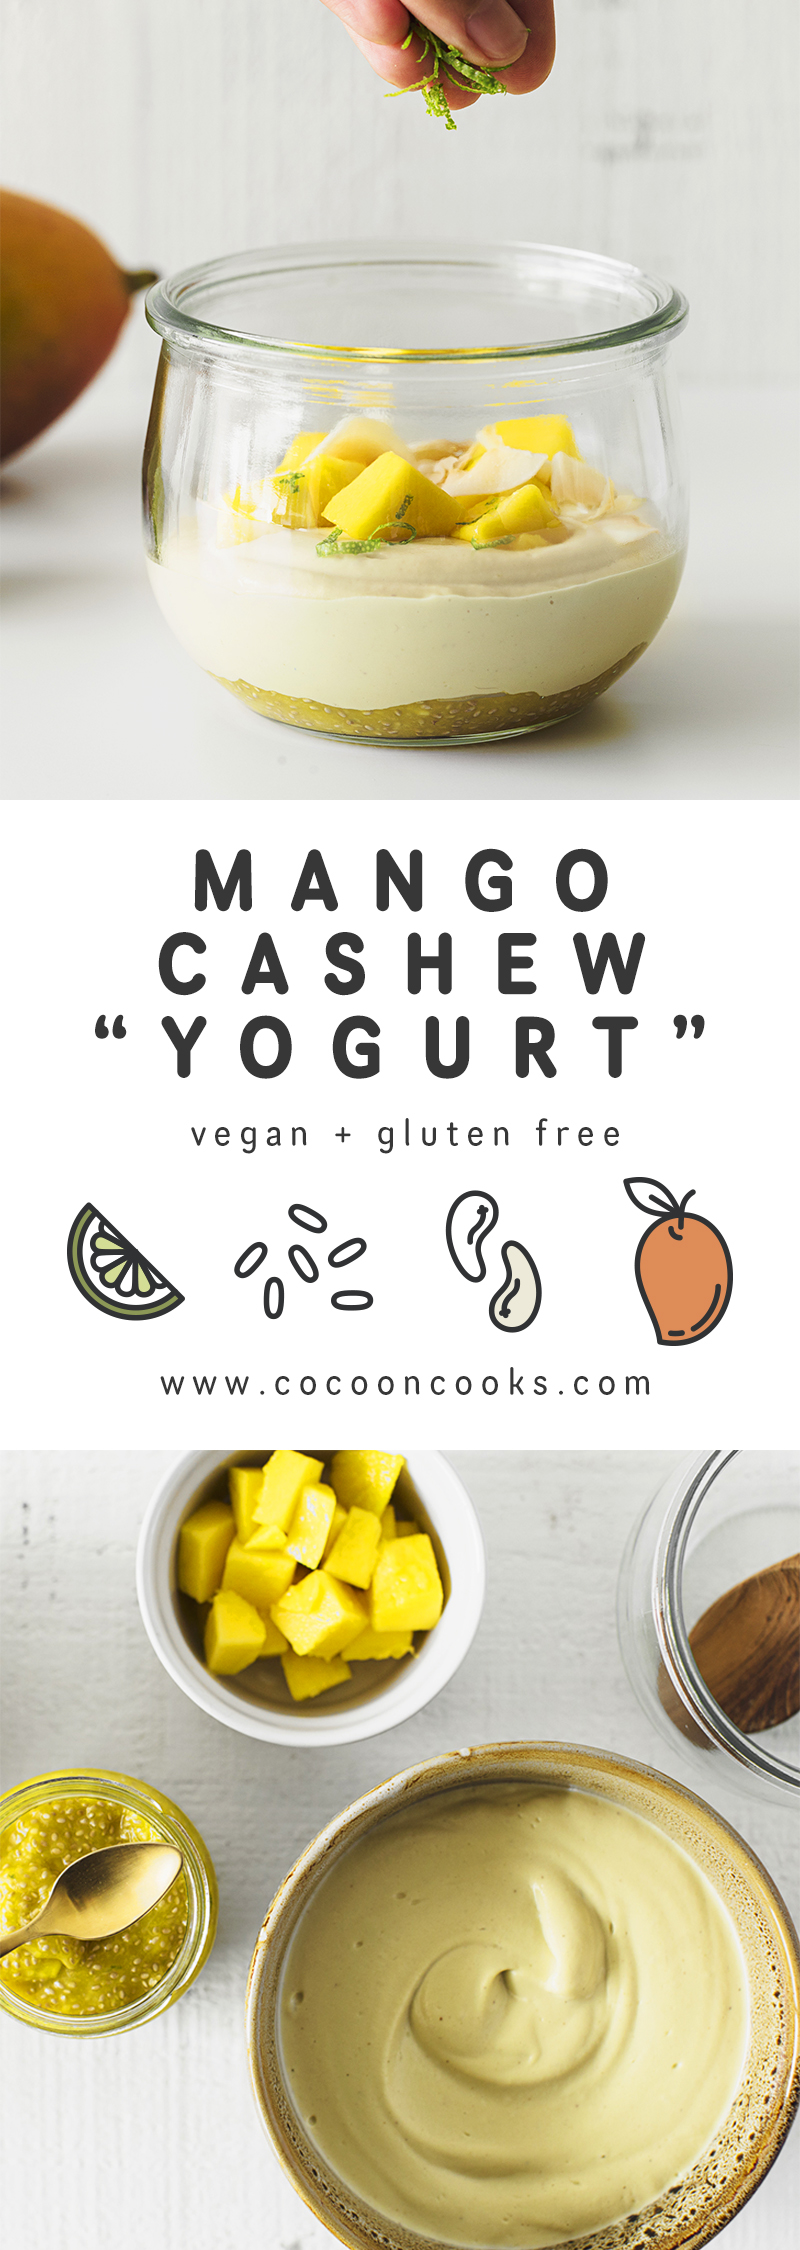 Vegan Mango Cashew Yogurt, the perfect option for a healthy summer breakfast. This recipe is 100% plant-based, delicious and very easy to make.